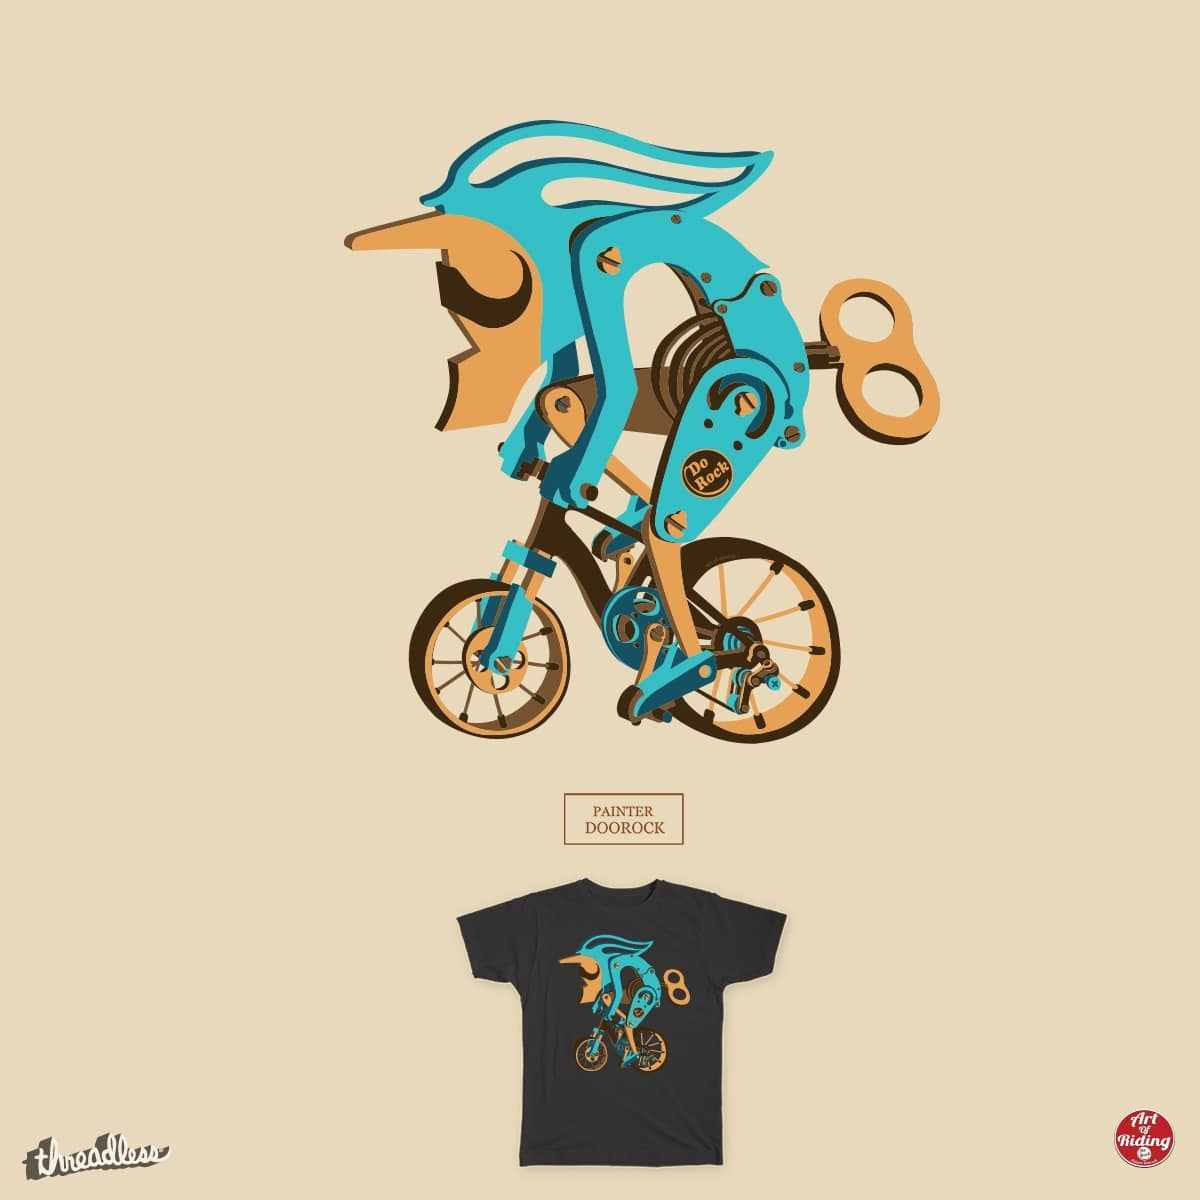 Riding artistic structure by doorocky on Threadless